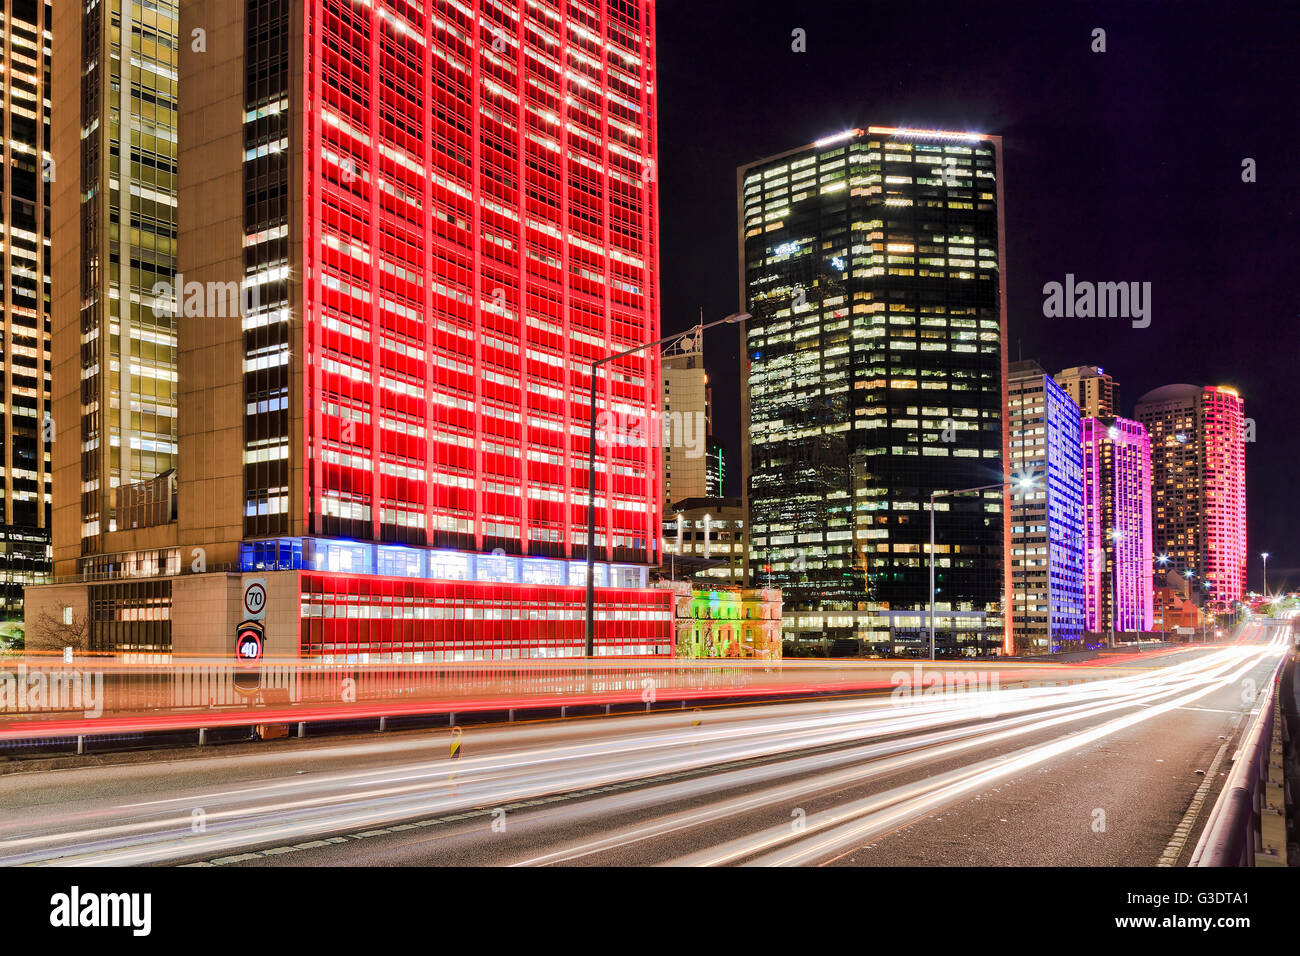 Headlamps of passing cars on a motorway in Sydney, Australia, during annual vivid Sydney light show. Illuminated - Stock Image